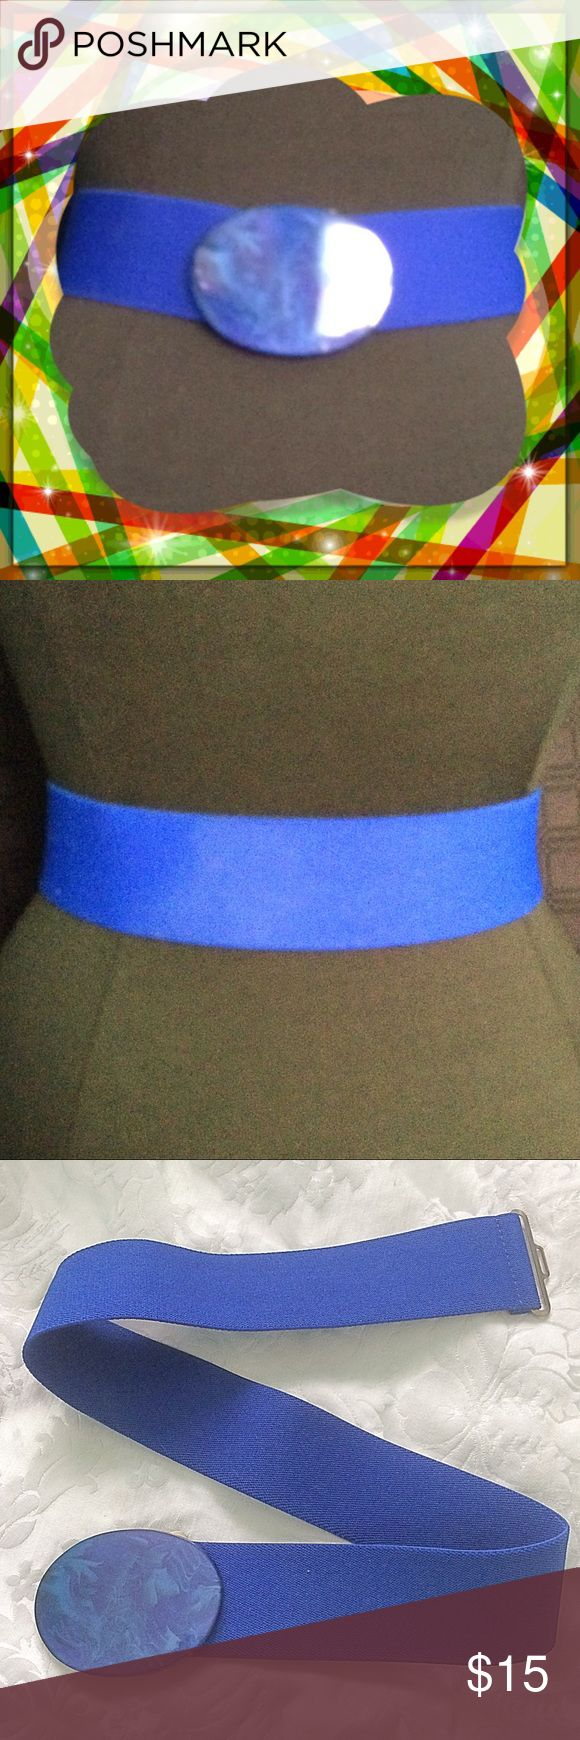 """Blue Stretch Belt / Vintage / Stretches 28"""" to 32"""" Blue Stretch Belt / Vintage / Stretches 28"""" to 32"""" / 2"""" wide. Please feel free to make an offer - Enjoy BIG discounts on bundles & save $$$ on shipping! I package safely & ship fast.  TY & Happy Poshing! 💜💜💜 Accessories Belts"""